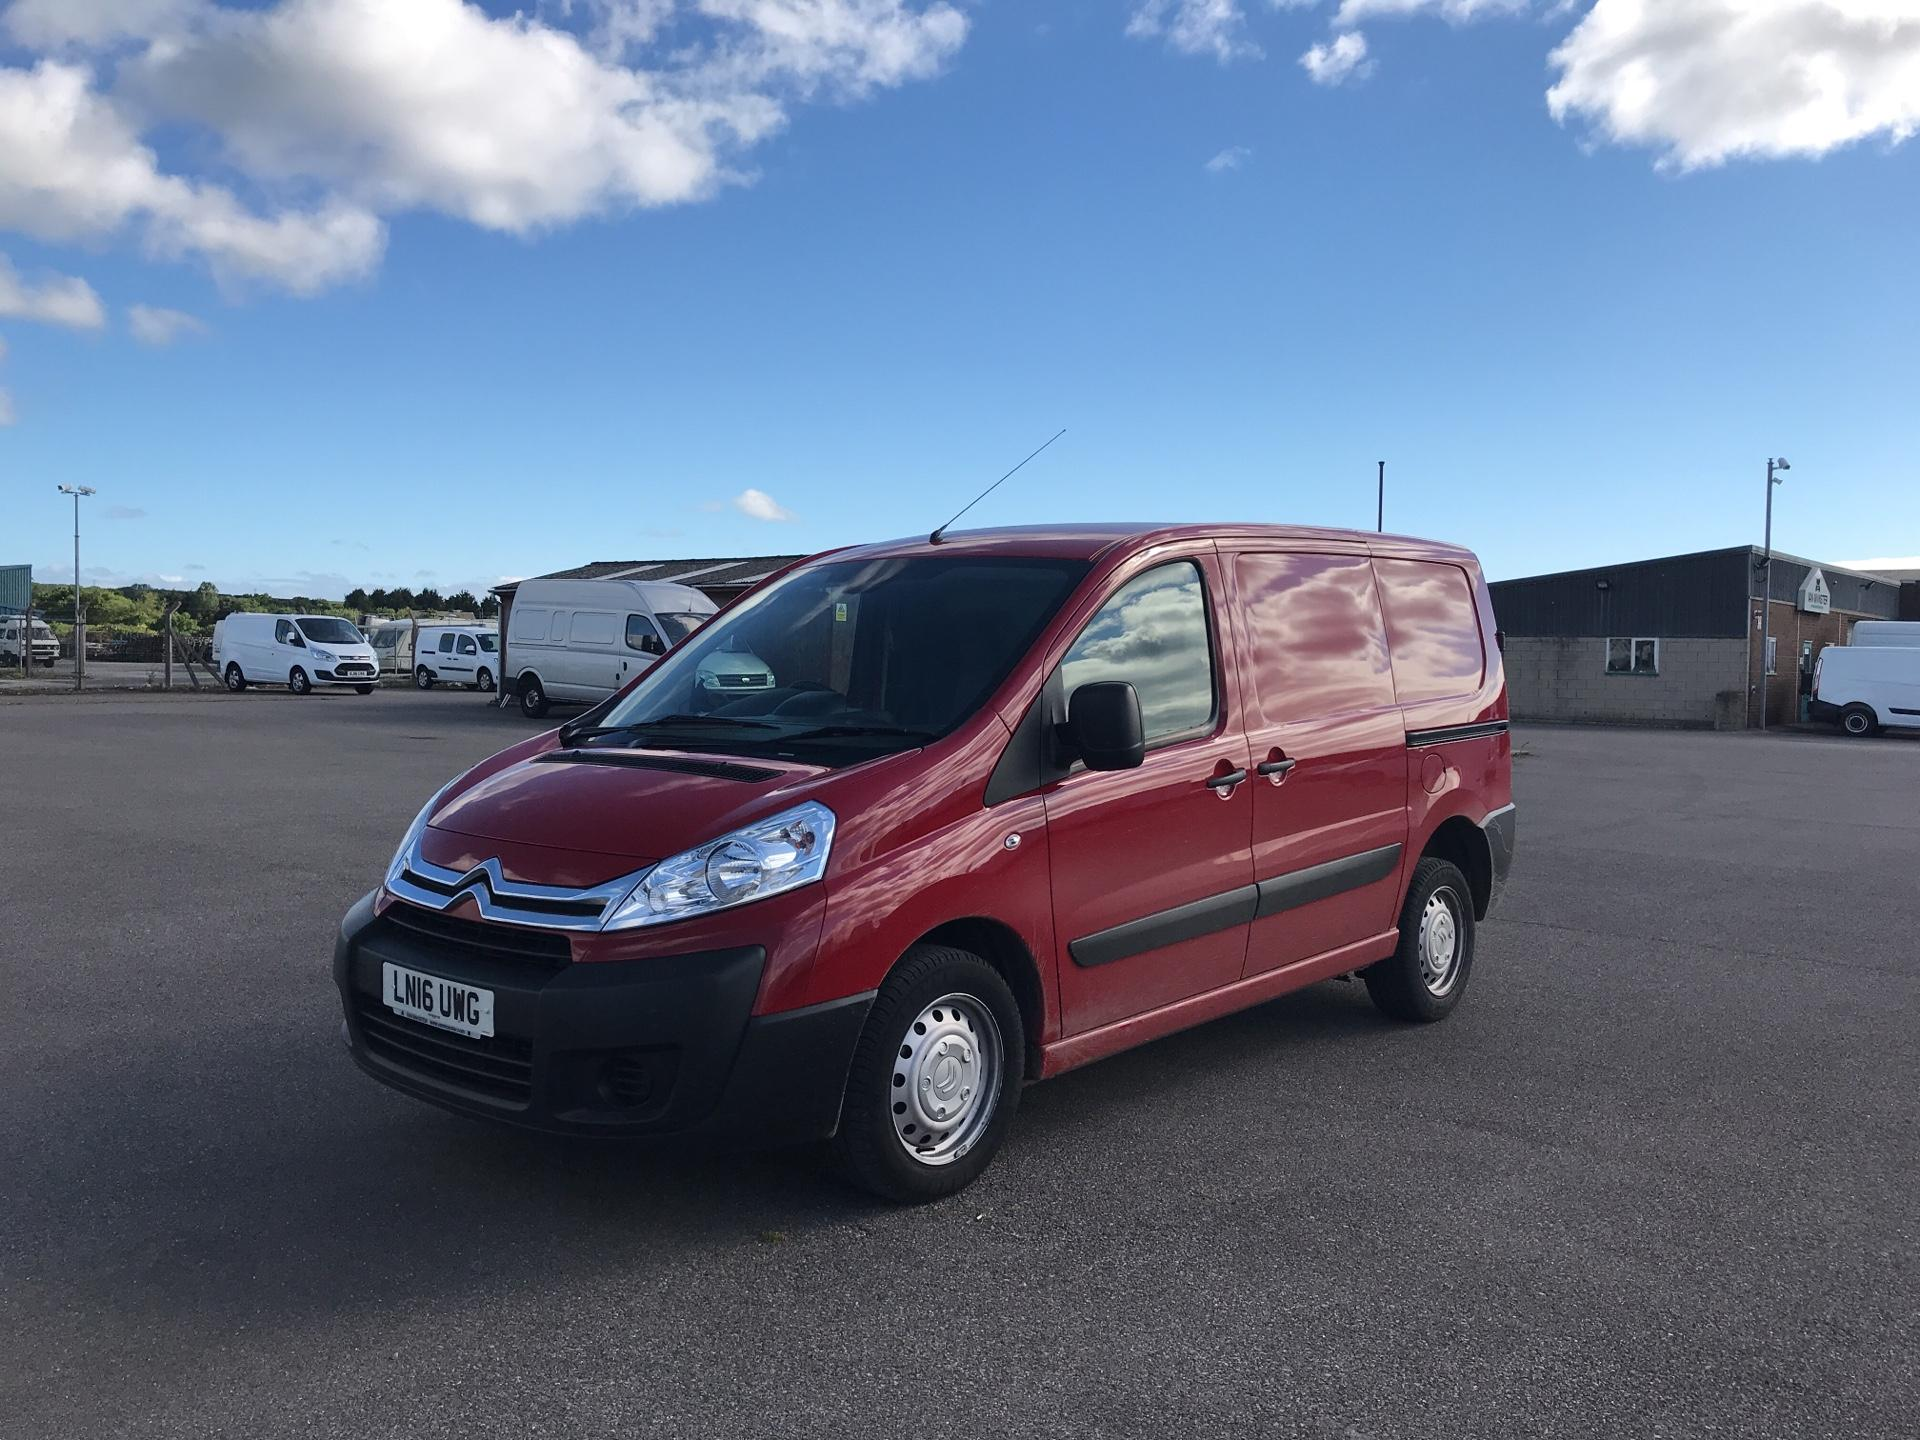 2016 Citroen Dispatch L1 DIESEL 1000 1.6 HDI H1 VAN ENTERPRISE EURO 4/5. AIR CON, SAT NAV (LN16UWG) Image 7